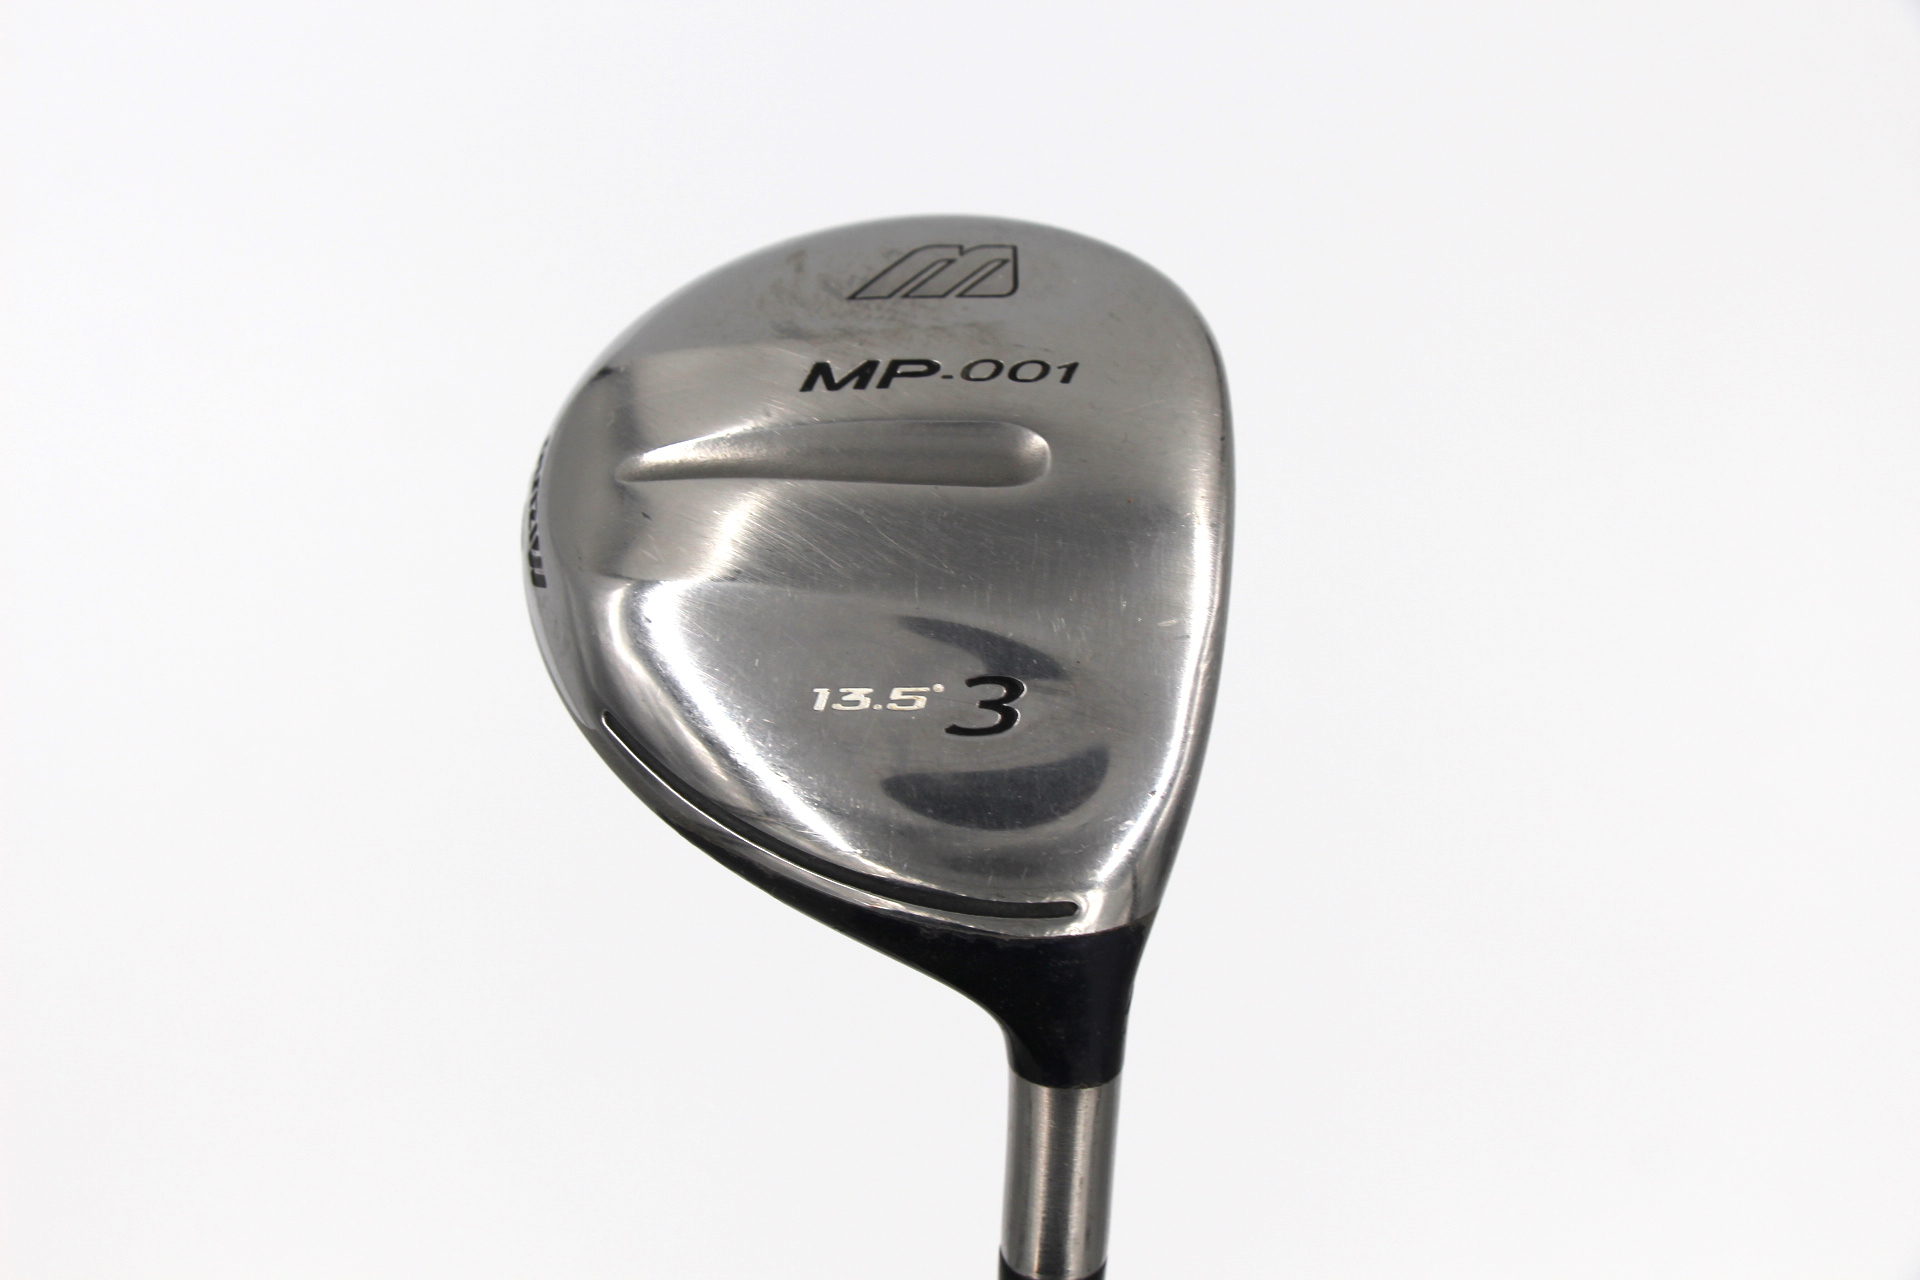 Mizuno MP-001 3-Wood Fairway